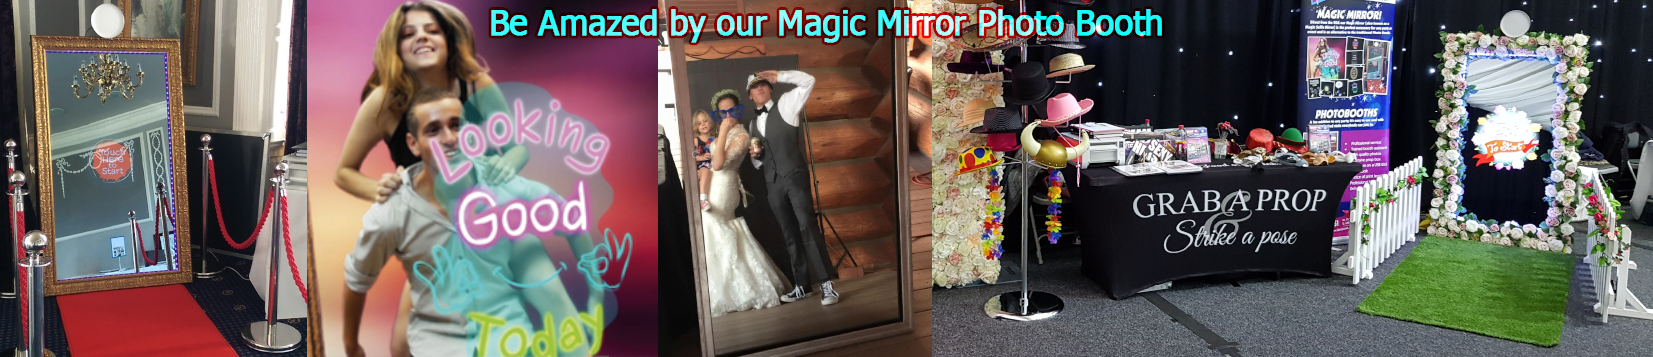 Country Garden Magic Mirror Photo Booth